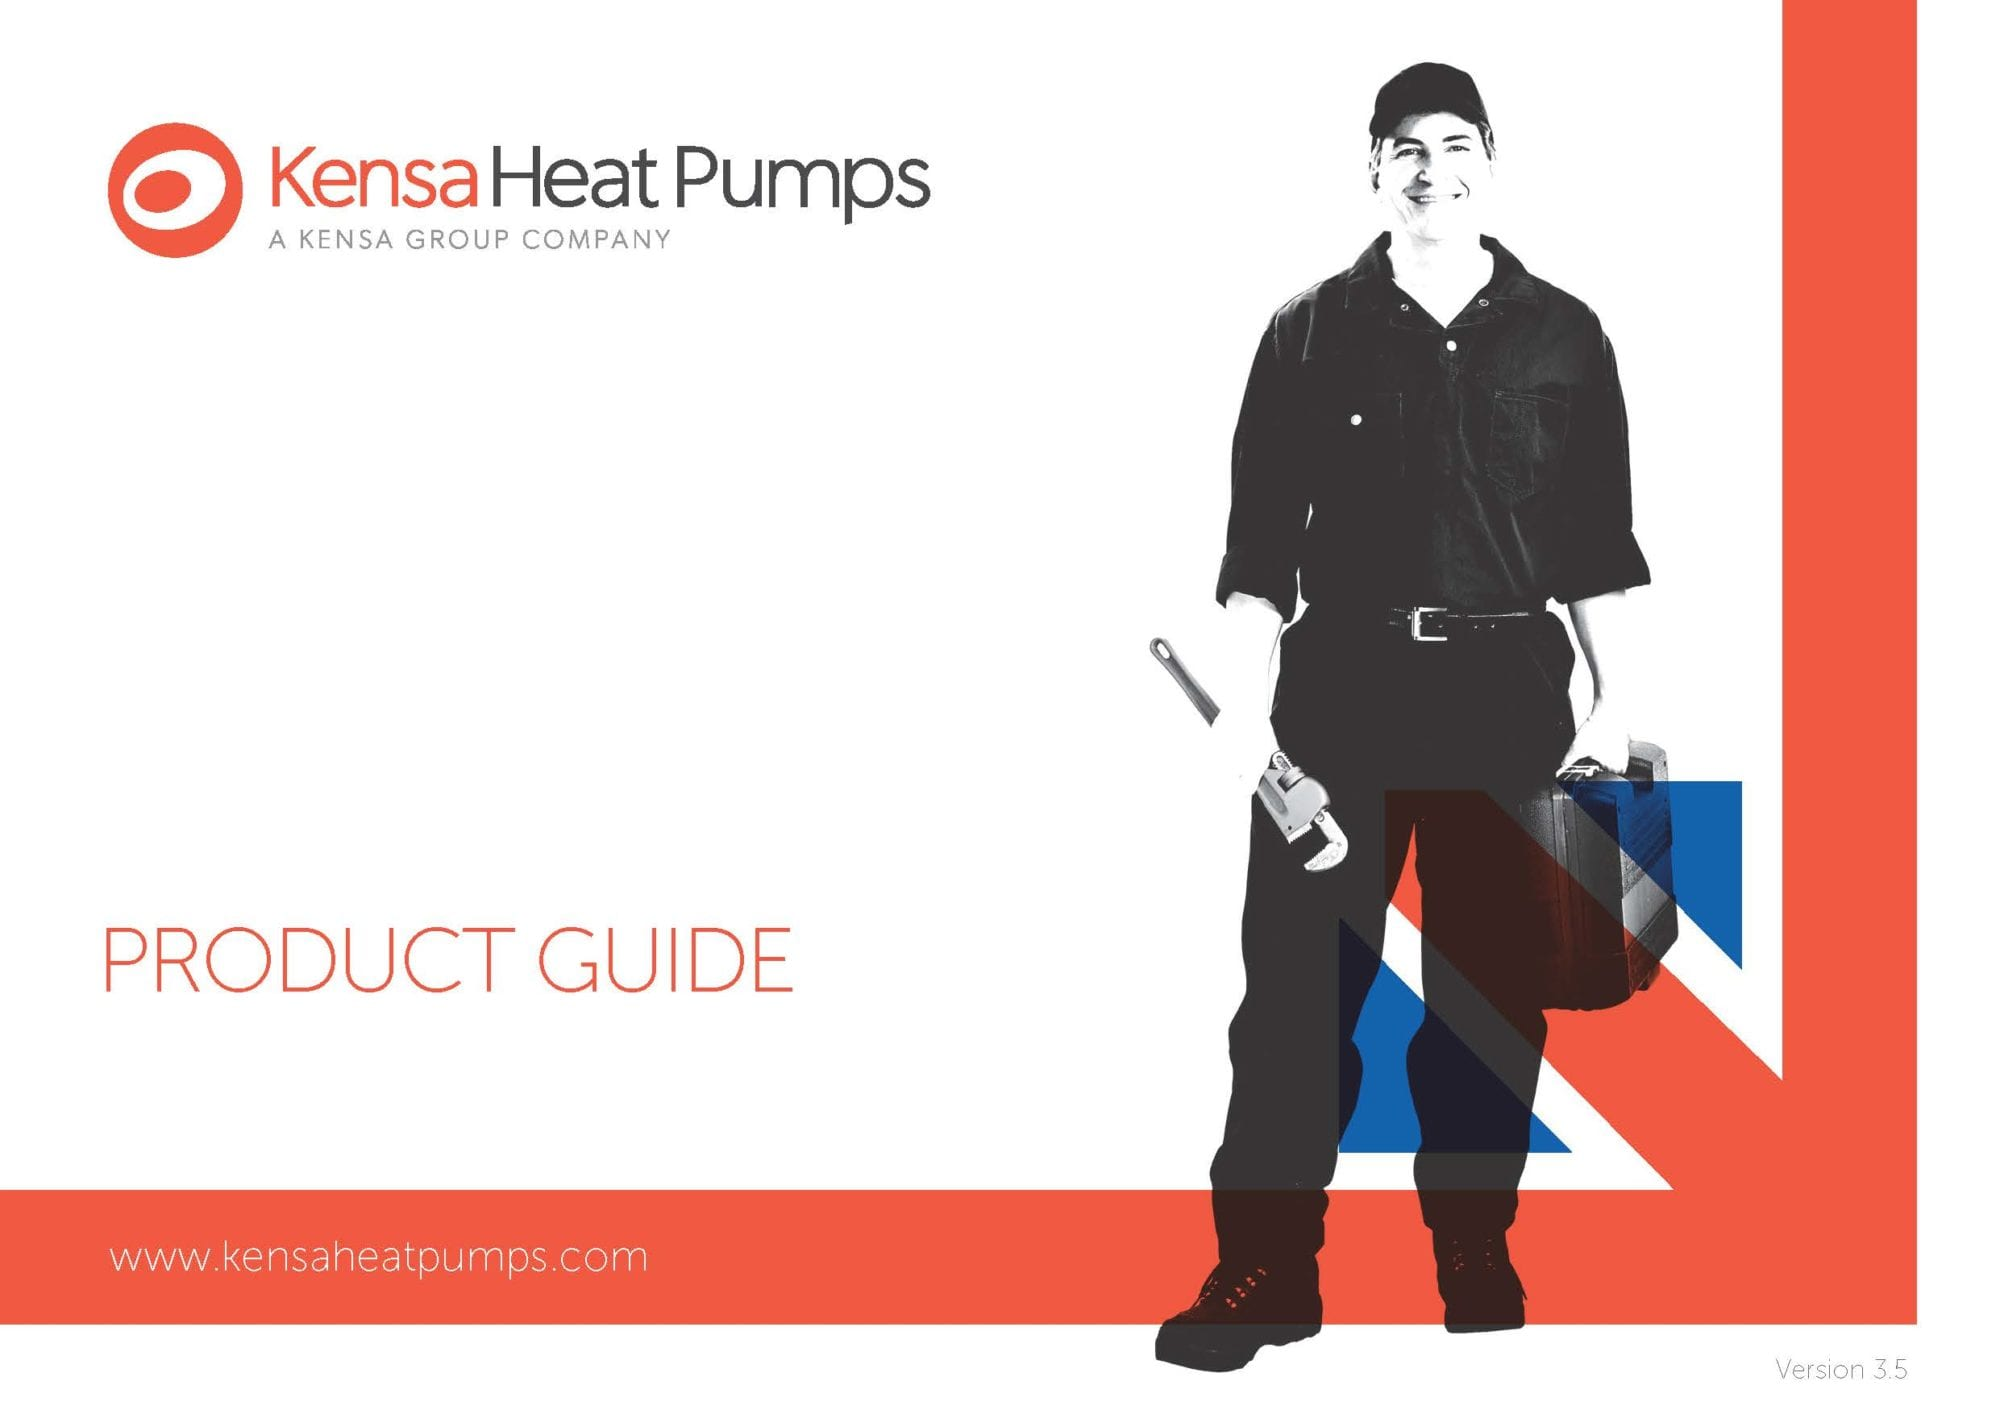 Kensa Heat Pumps Product Guide